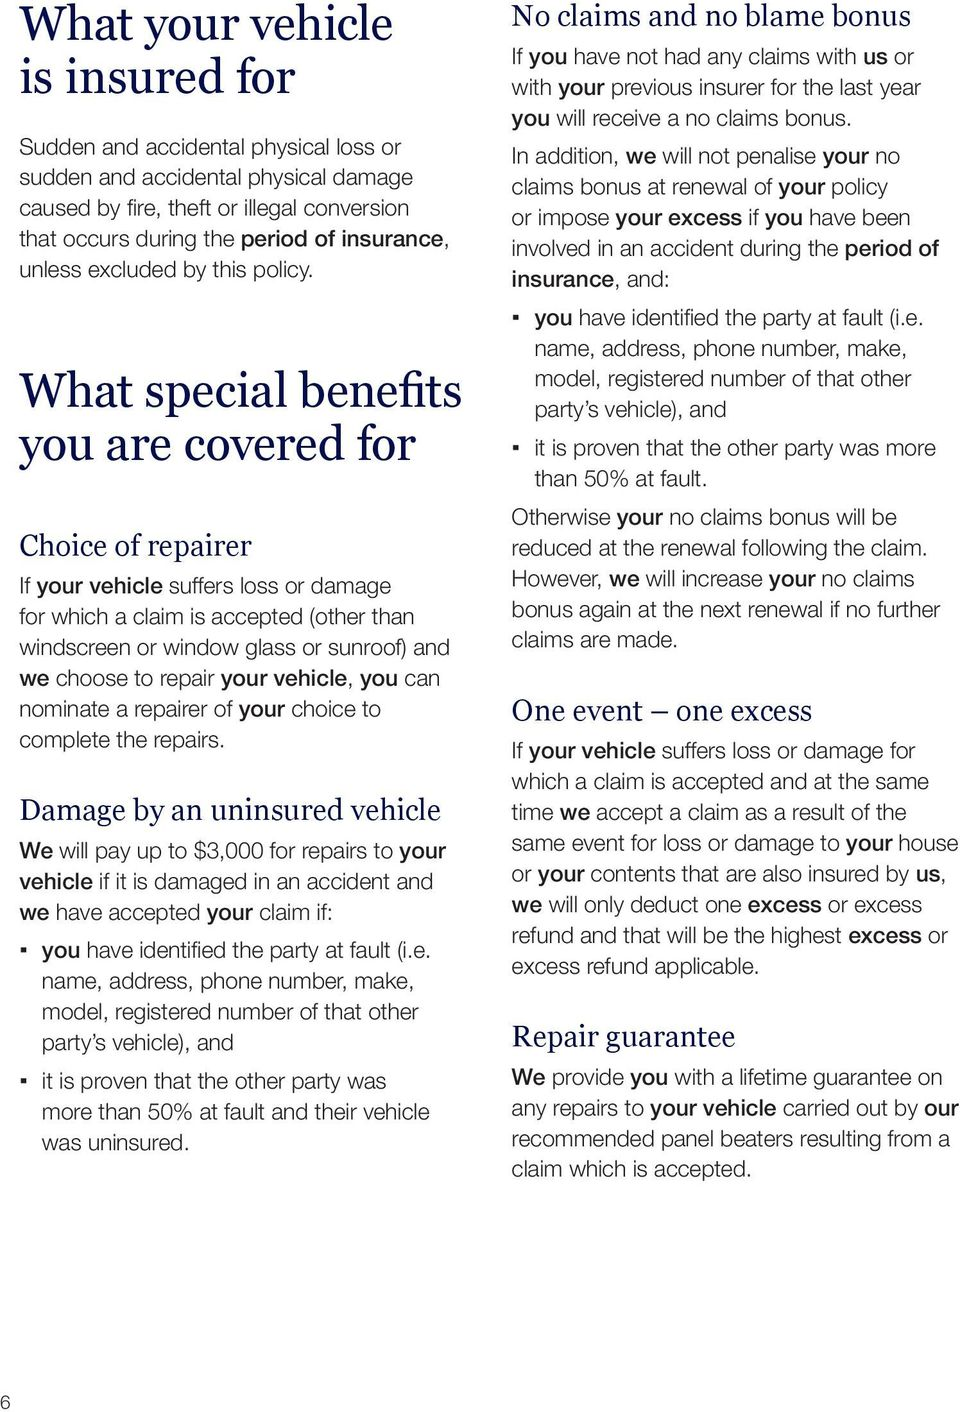 What special benefits you are covered for Choice of repairer If your vehicle suffers loss or damage for which a claim is accepted (other than windscreen or window glass or sunroof) and we choose to